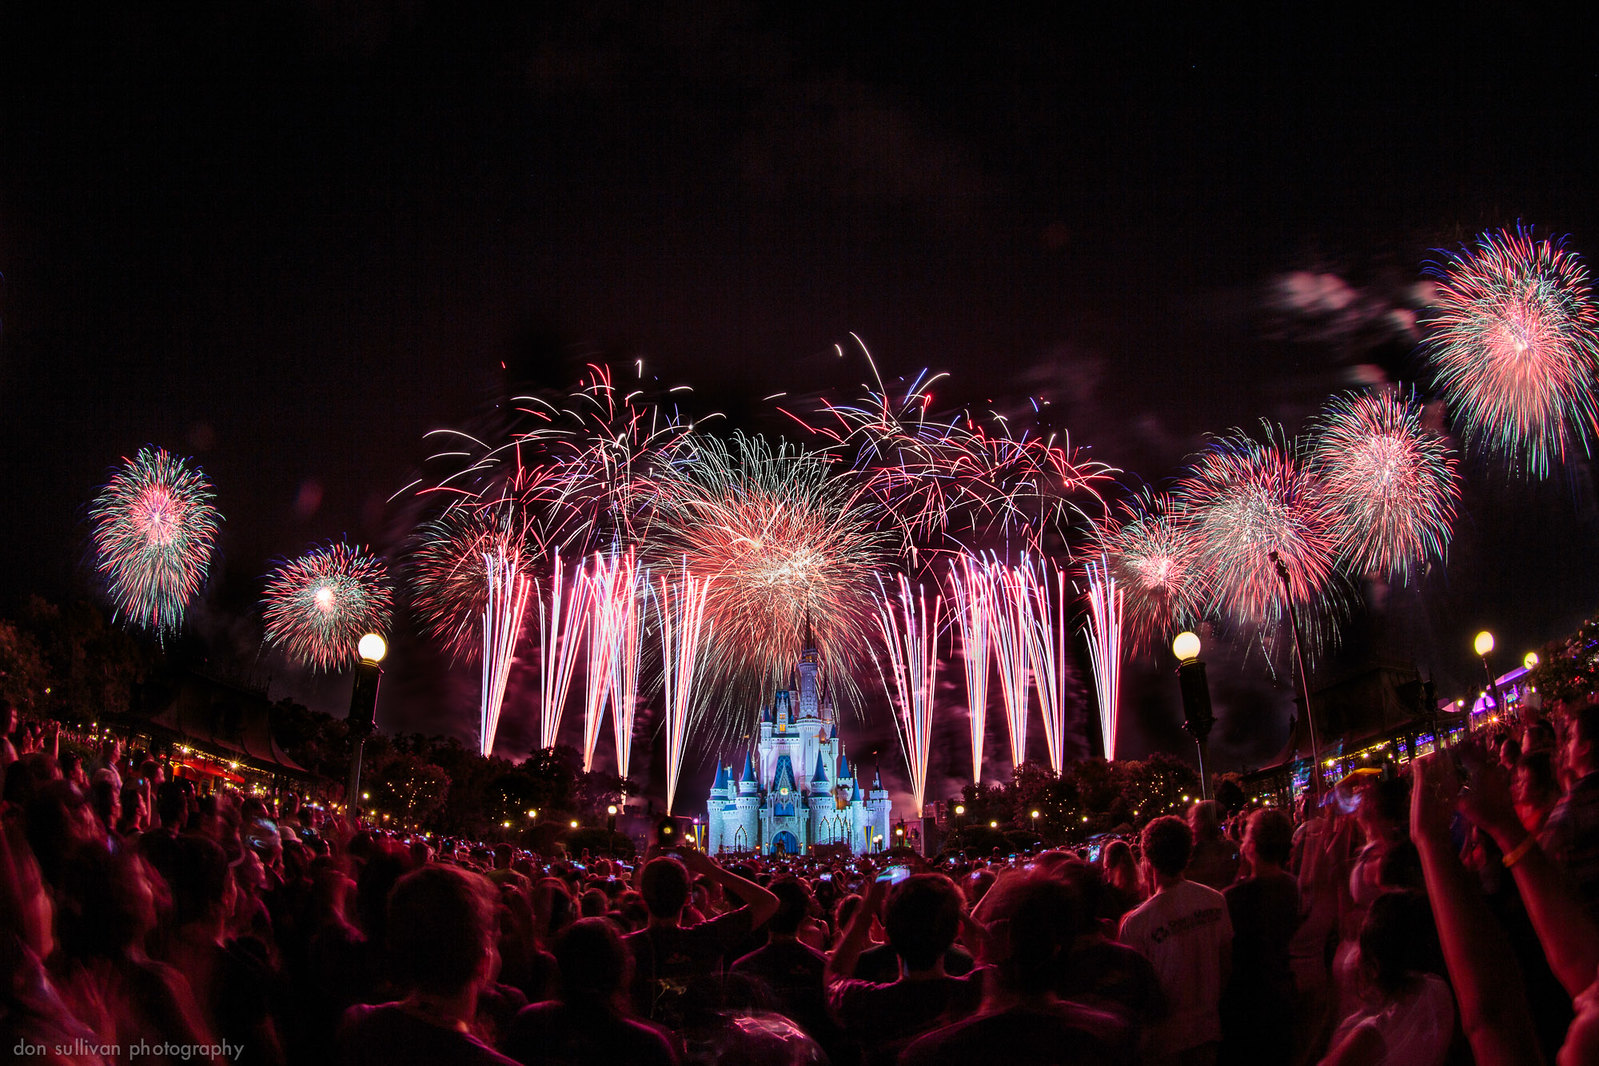 Disney's Celebrate America - A Fourth of July Concert in the Sky